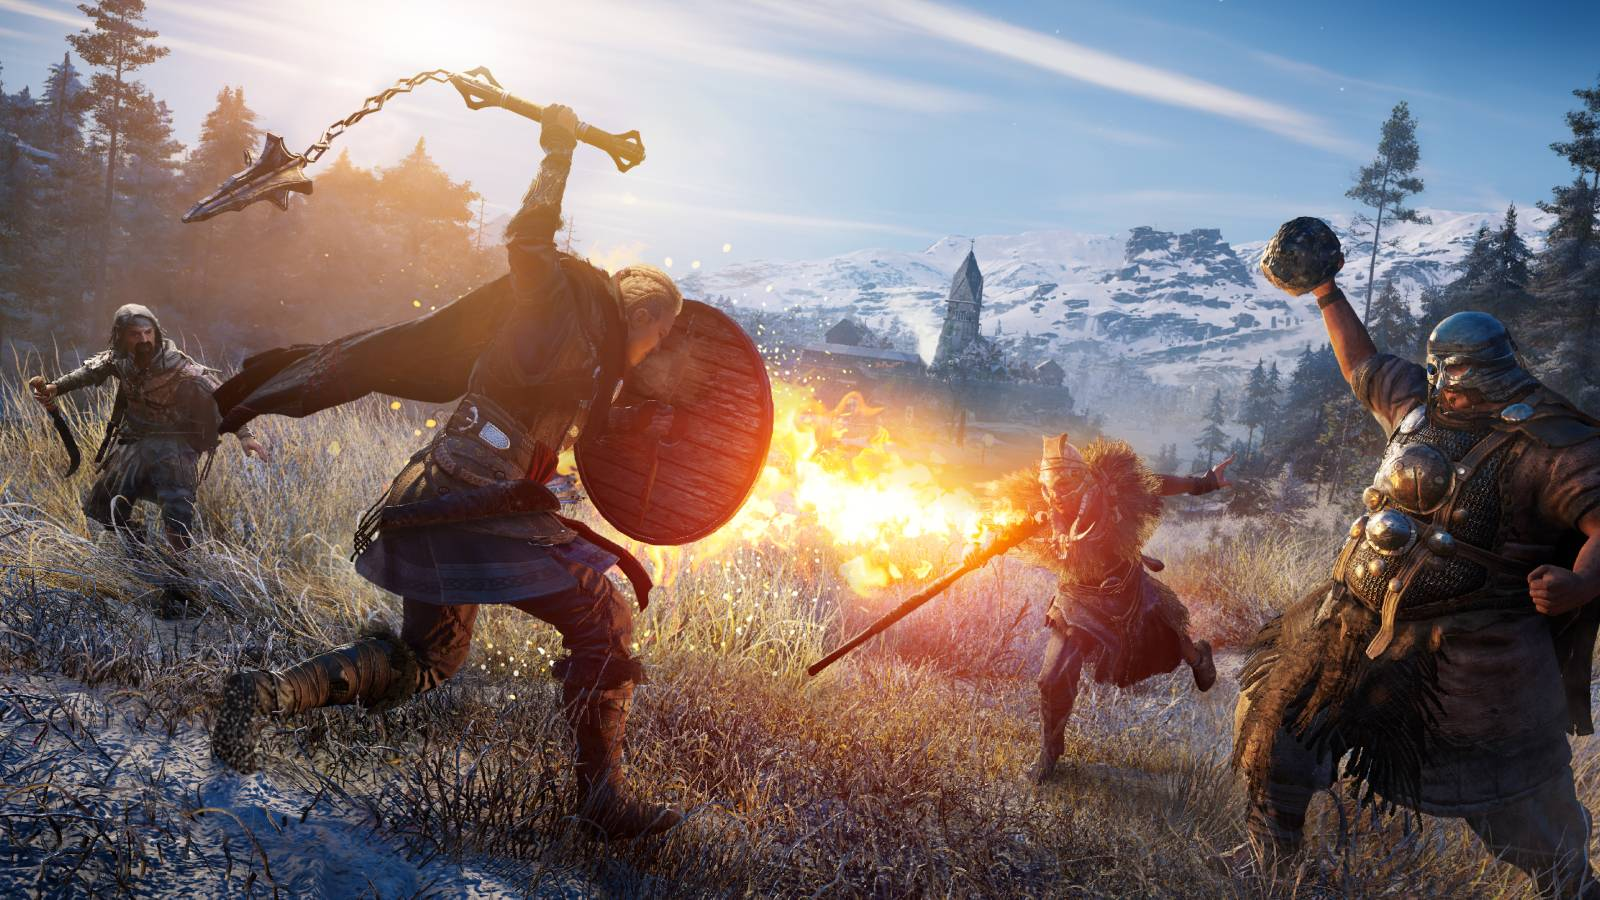 assassin's creed valhalla endings guide